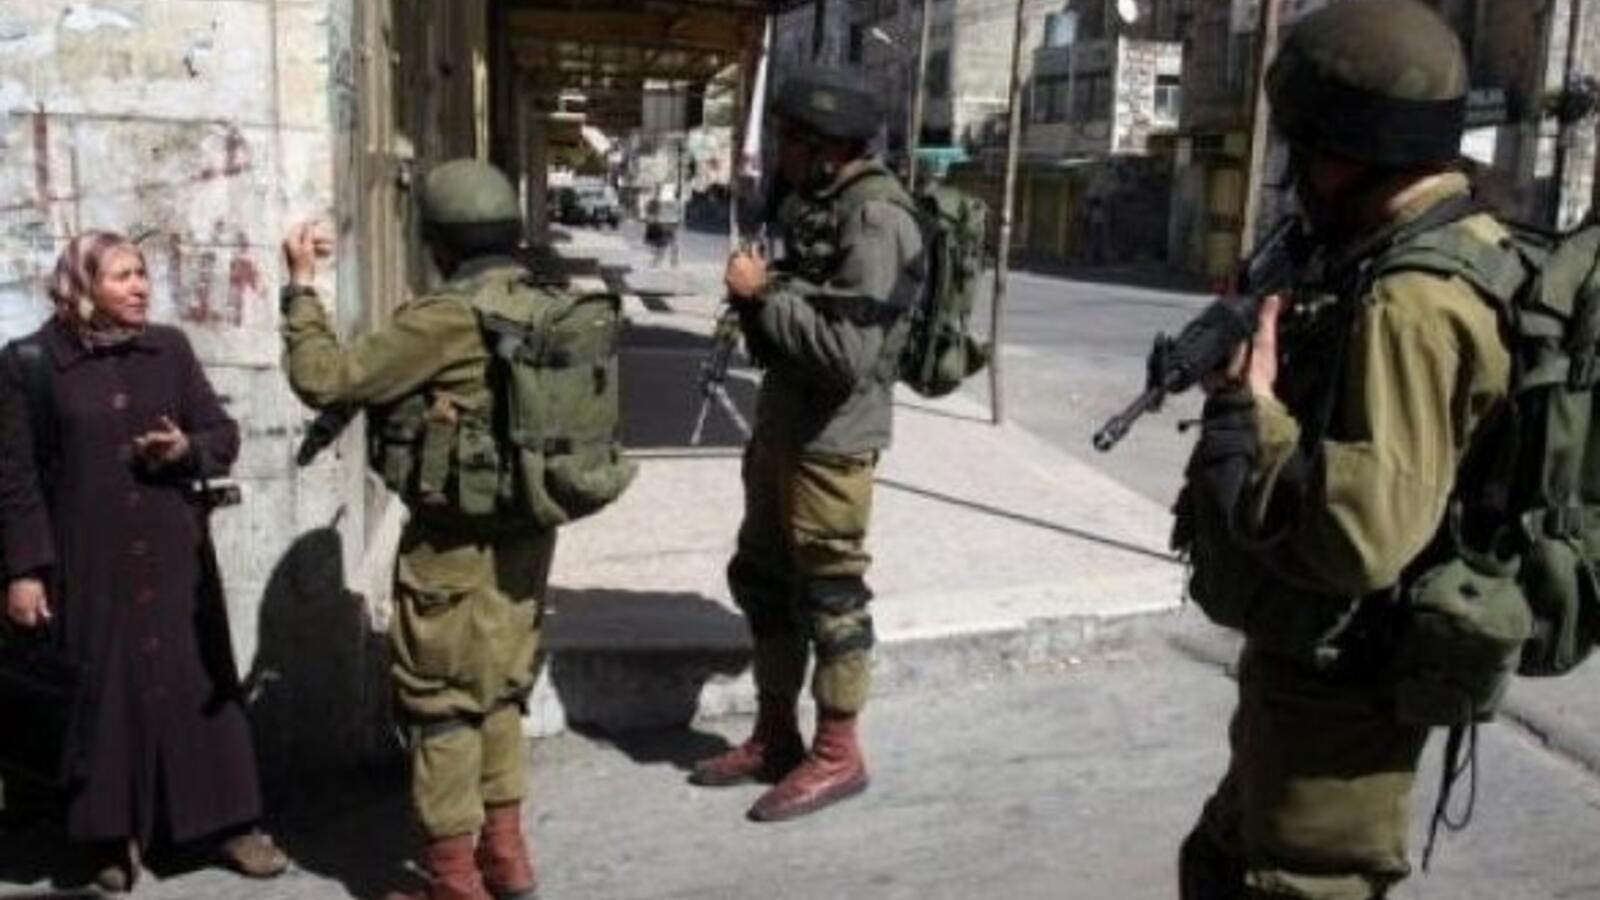 Israeli soldiers stop a Palestinian woman in the Palestinian side of the city of Hebron. (AFP/ File)